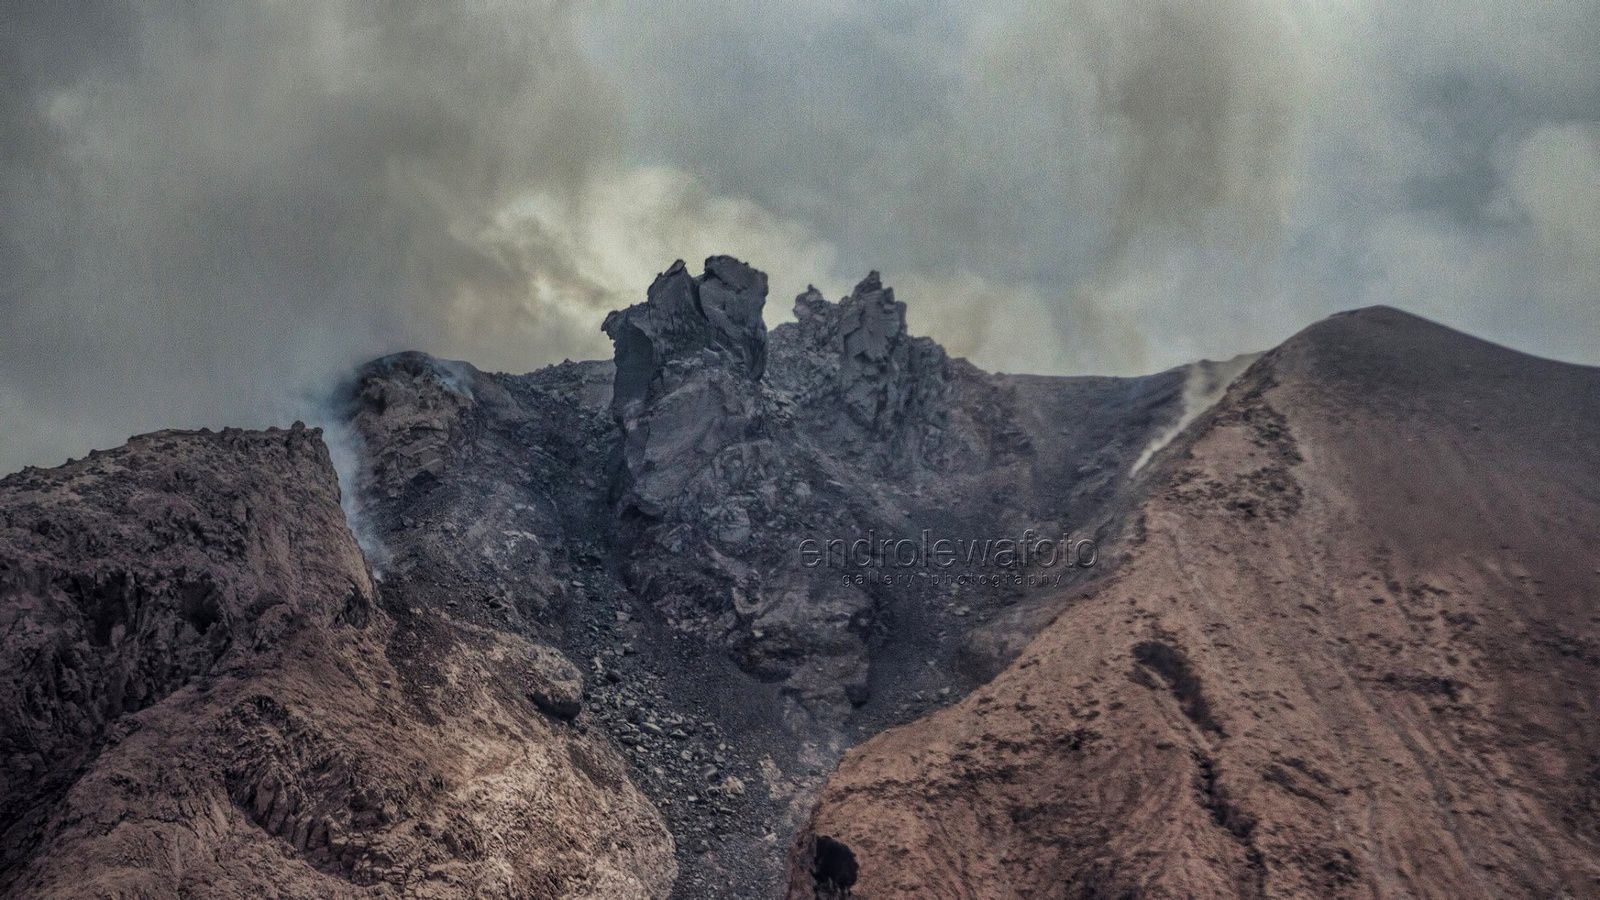 Sinabung - morphological changes of the lava dome - 03.08.2017 / 13h23 - photo Endro Lewa